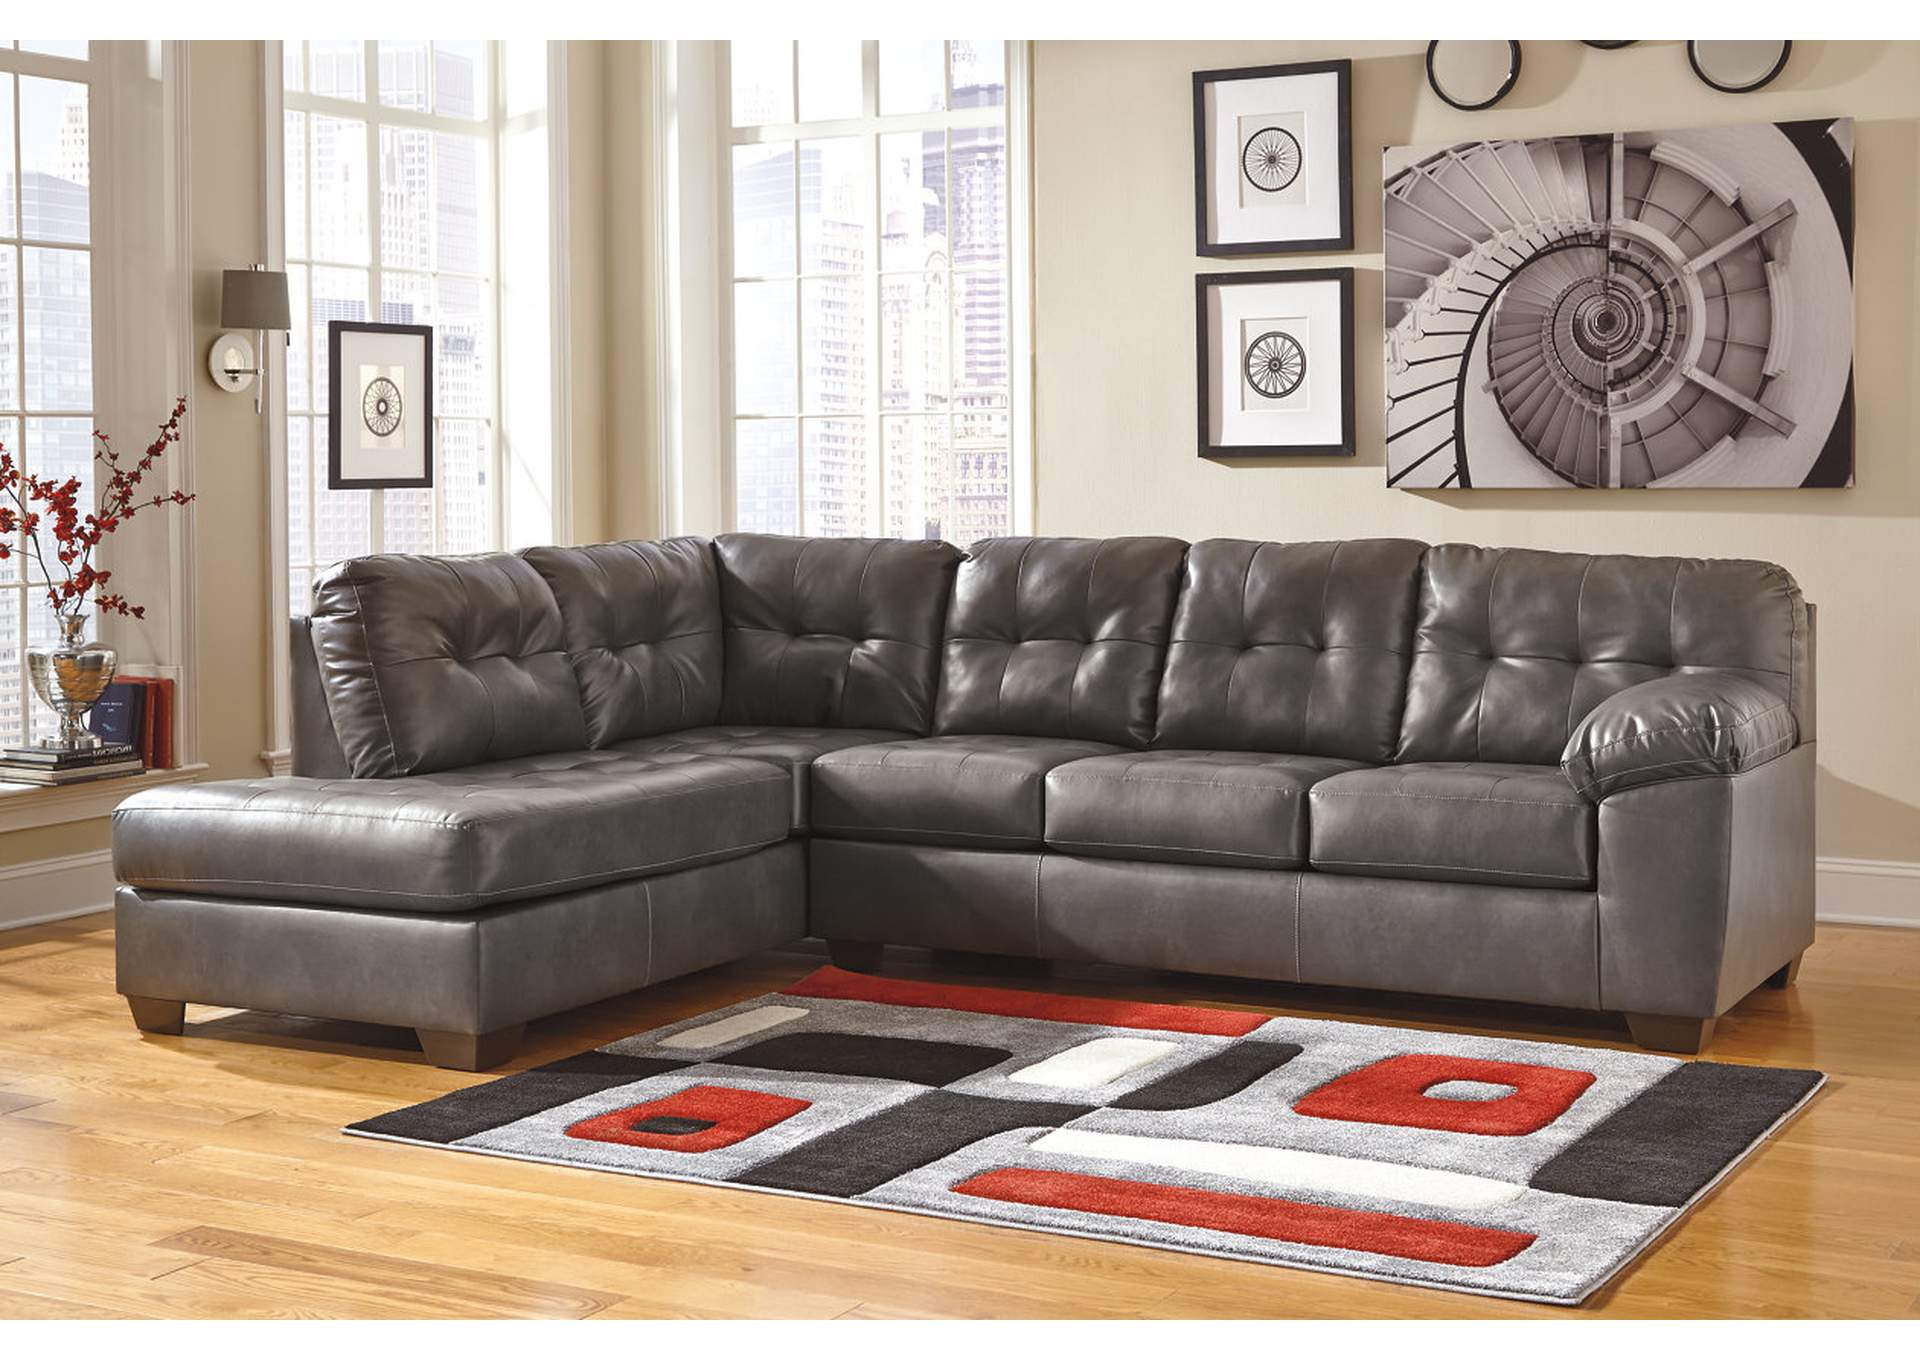 Alliston DuraBlend Gray Left Facing Chaise End Sectional,Signature Design By Ashley